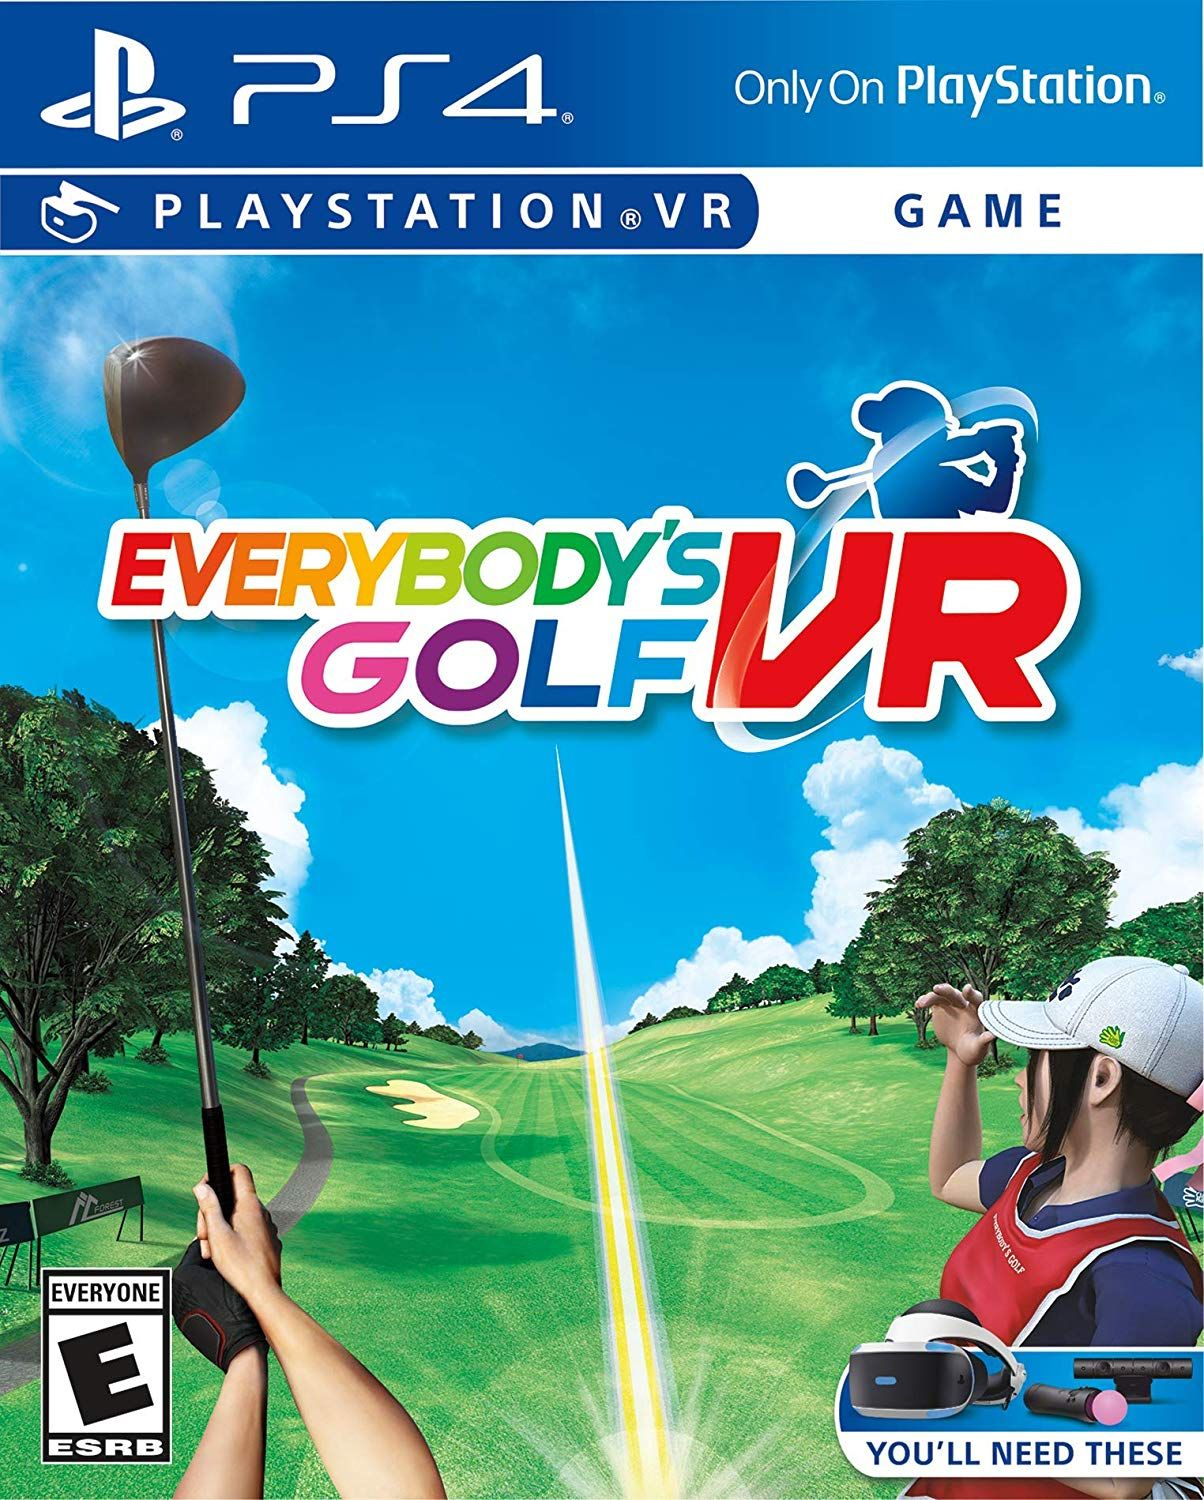 Everybody S Golf Vr Golf Games For Kids Playstation Vr Playstation